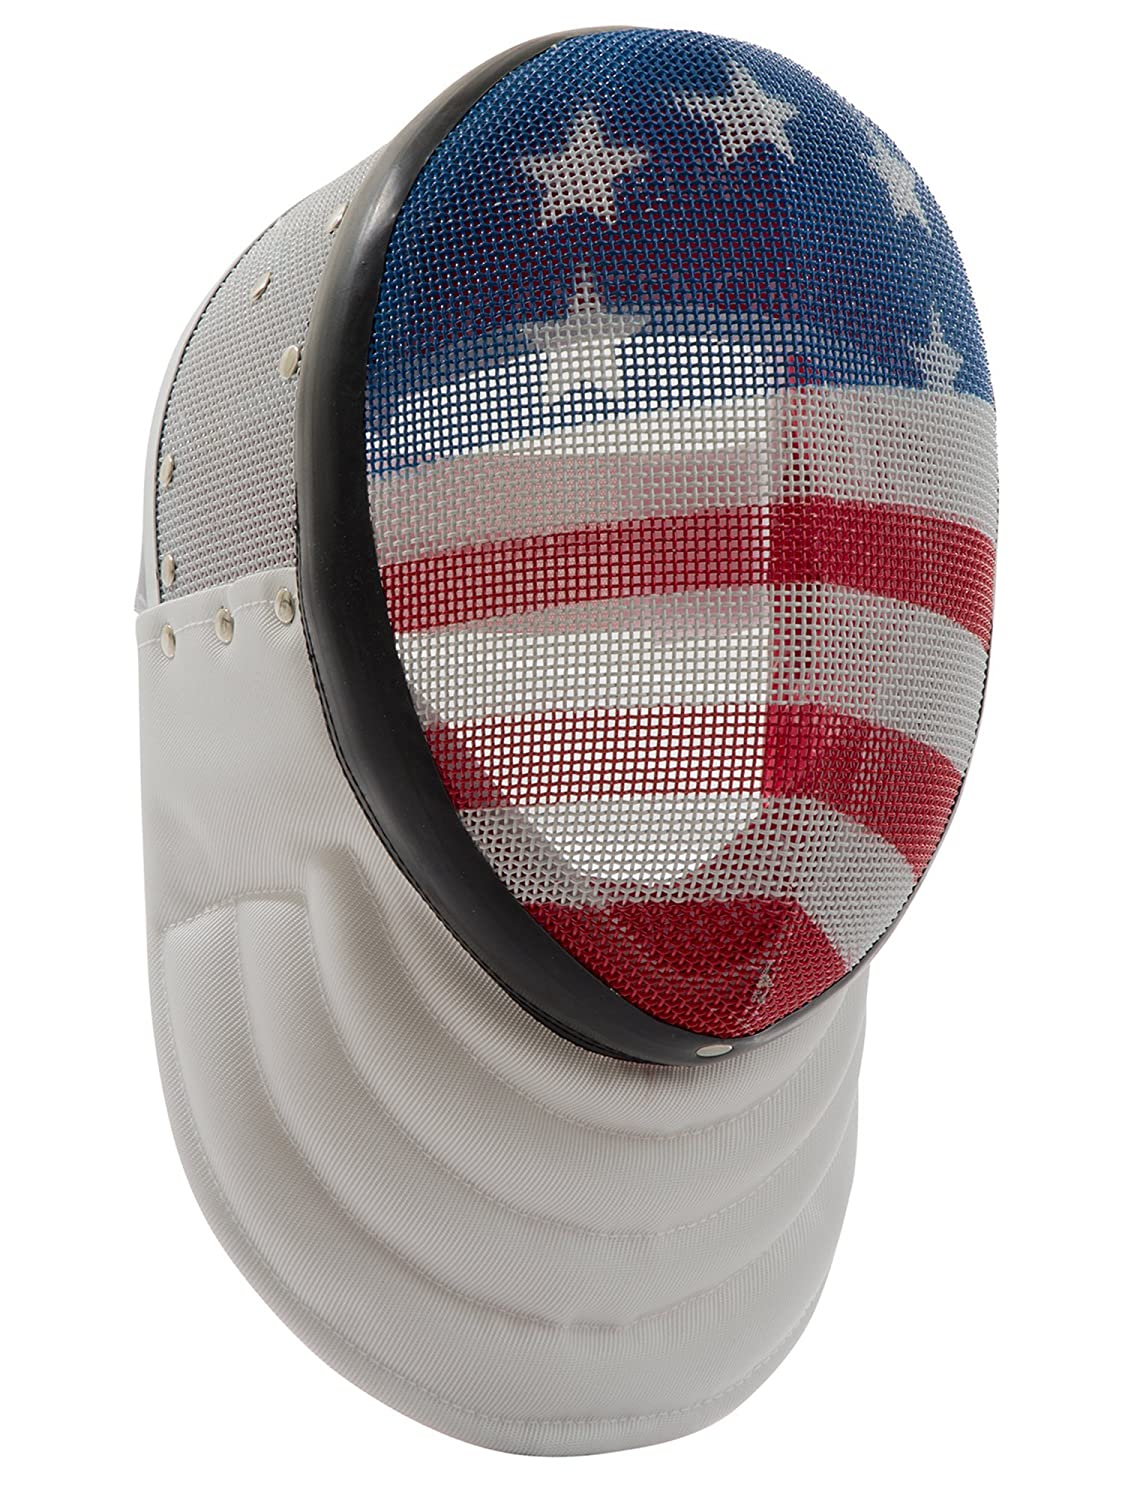 American Fencing Gear Fencing Epee Mask CE350N Certified National Grade